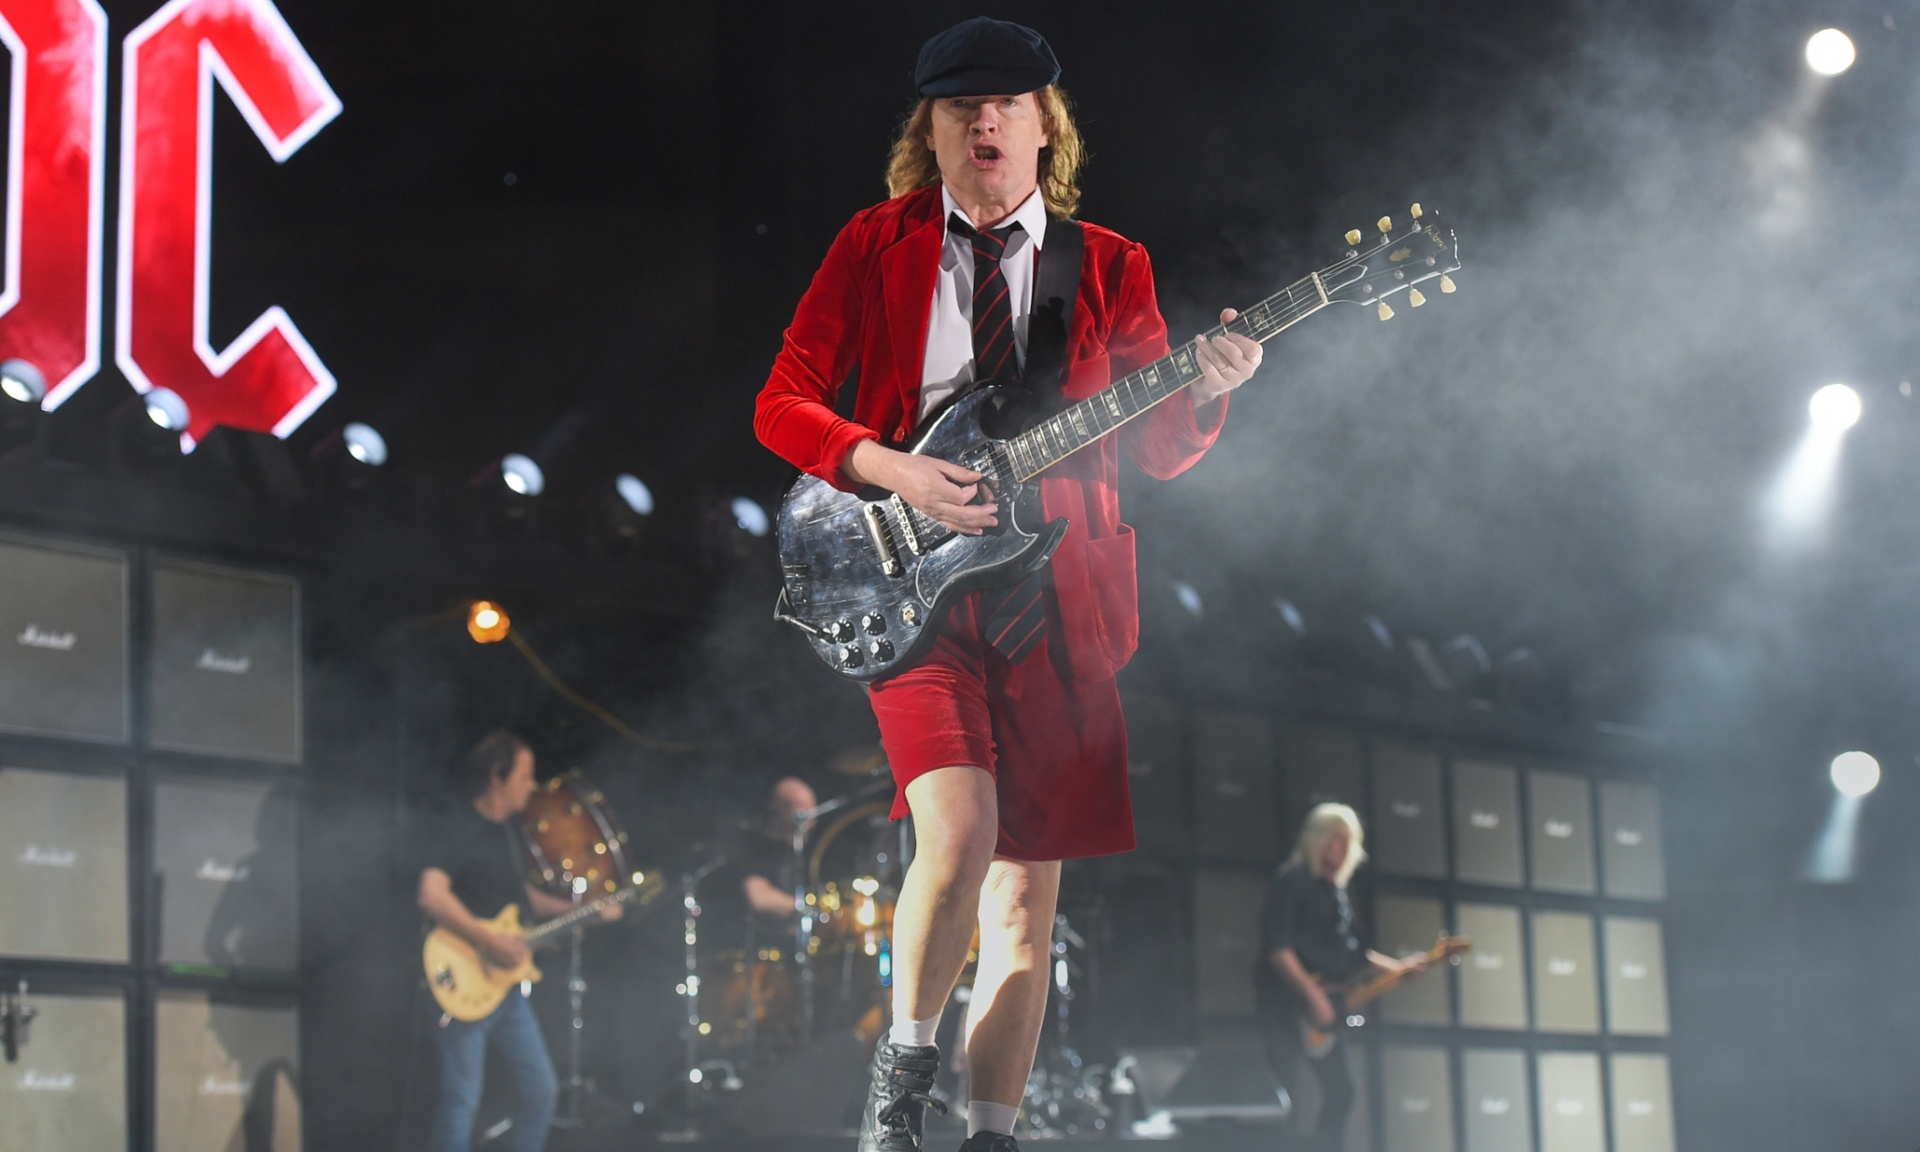 THE UK GUARDIAN's REVIEW OF AC/DC COACHELLA PERFORMANCE